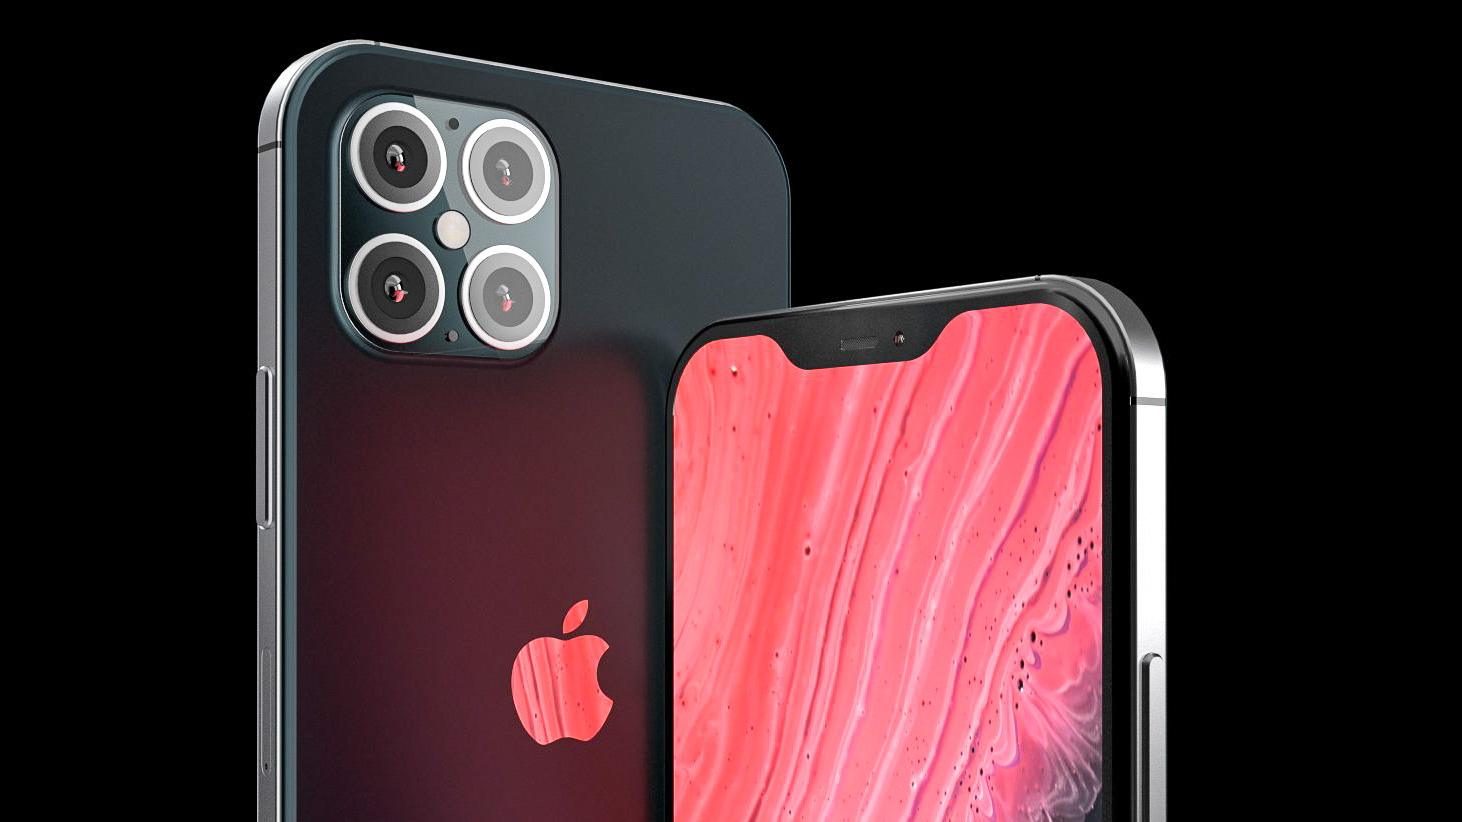 iPhone 12: What we know so far about September 2020 iPhone release ...